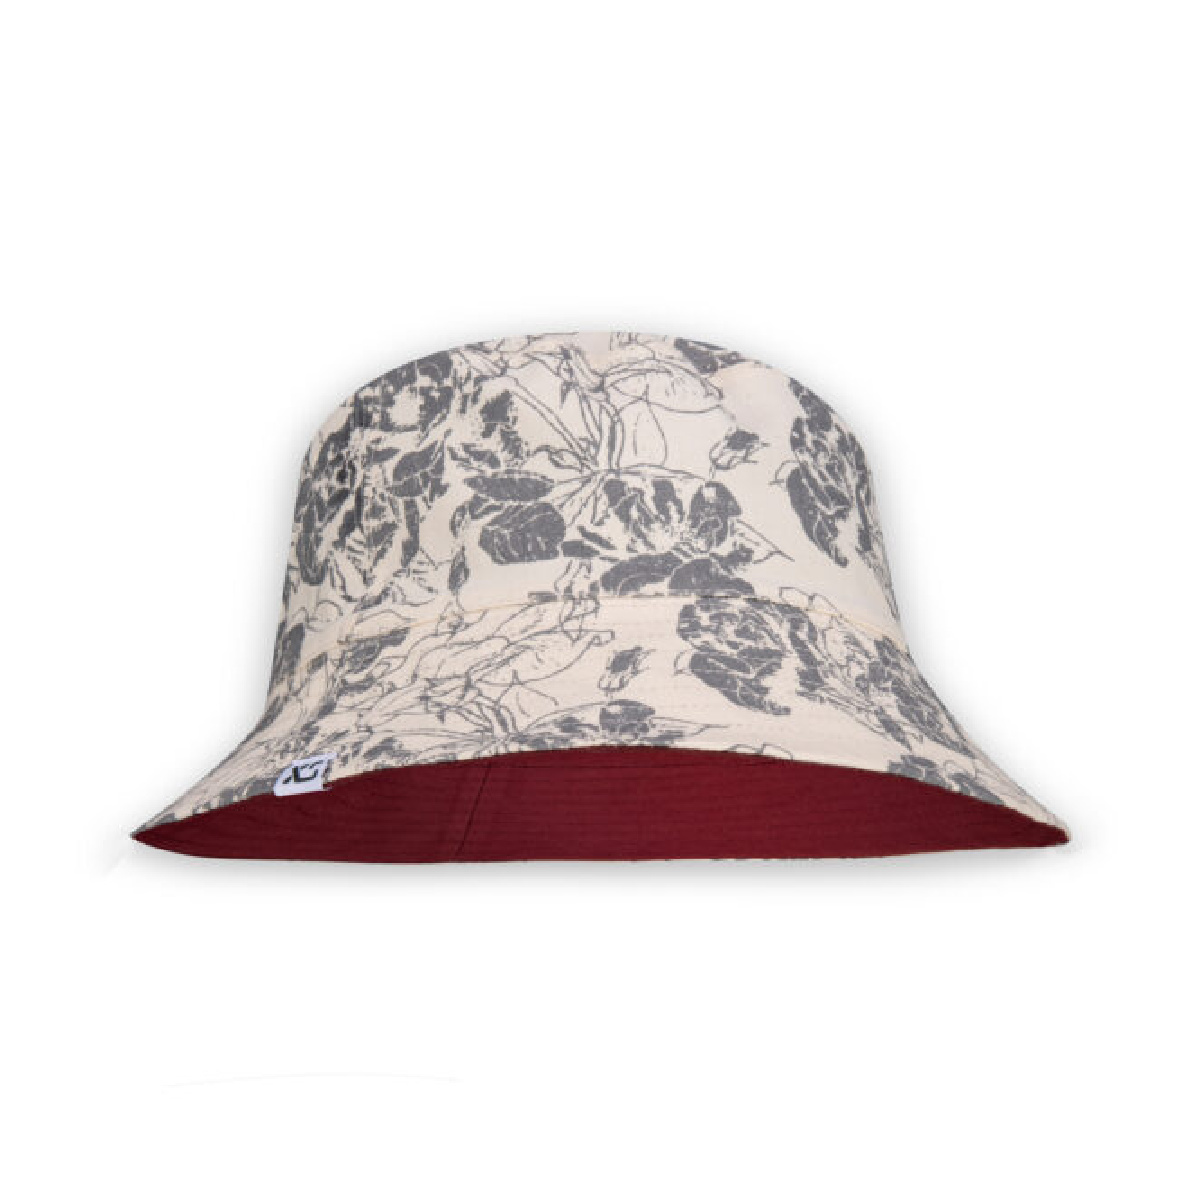 XS Unified XS Unified Reversible Bucket Hat Vintage Floral